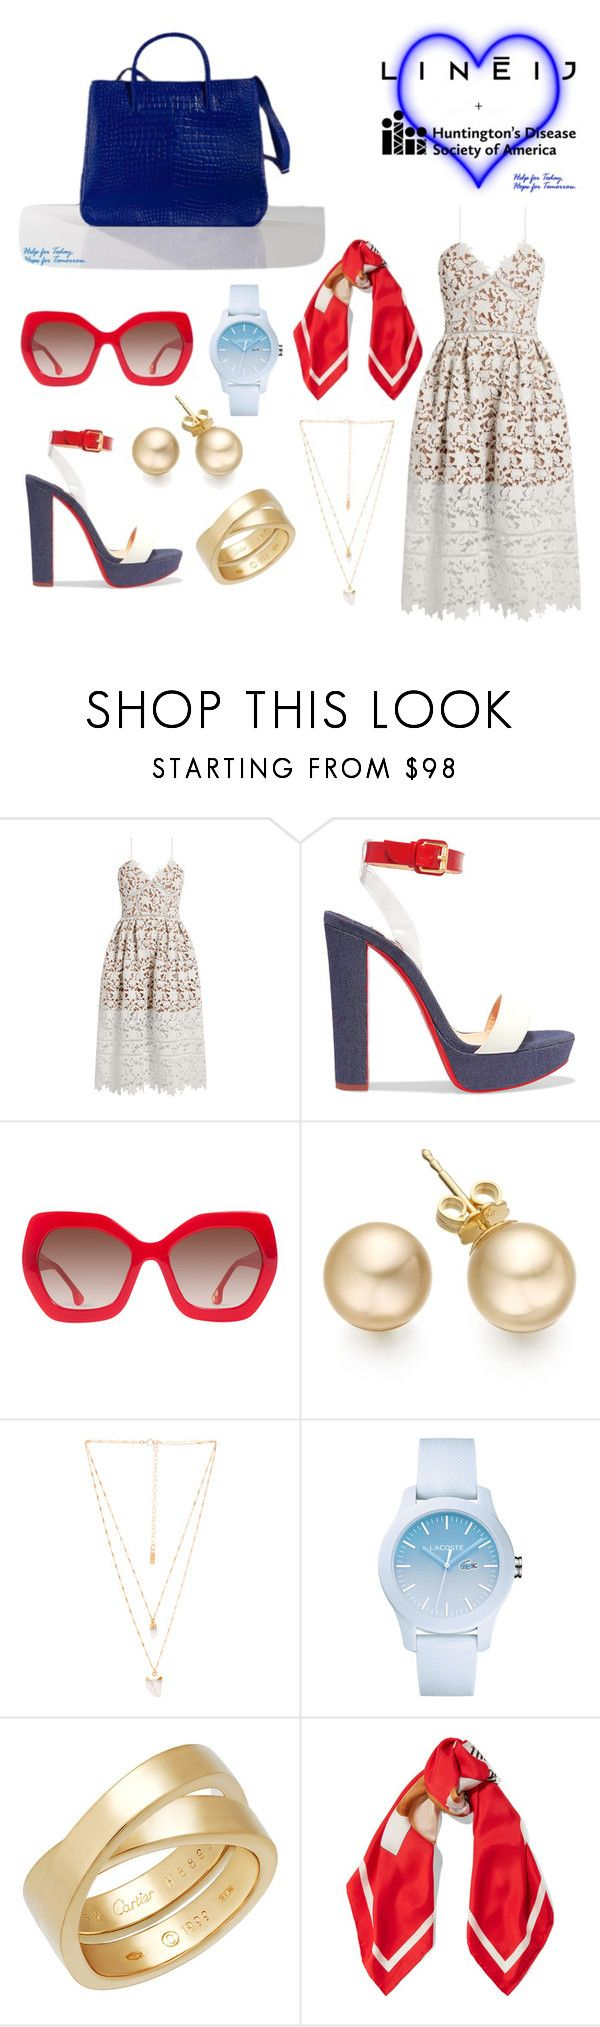 """""""A Beautiful Do Gooder!"""" by lineijinc ❤ liked on Polyvore featuring self-portrait, Christian Louboutin, Alice + Olivia, Natalie B, Lacoste, Cartier and Moschino"""